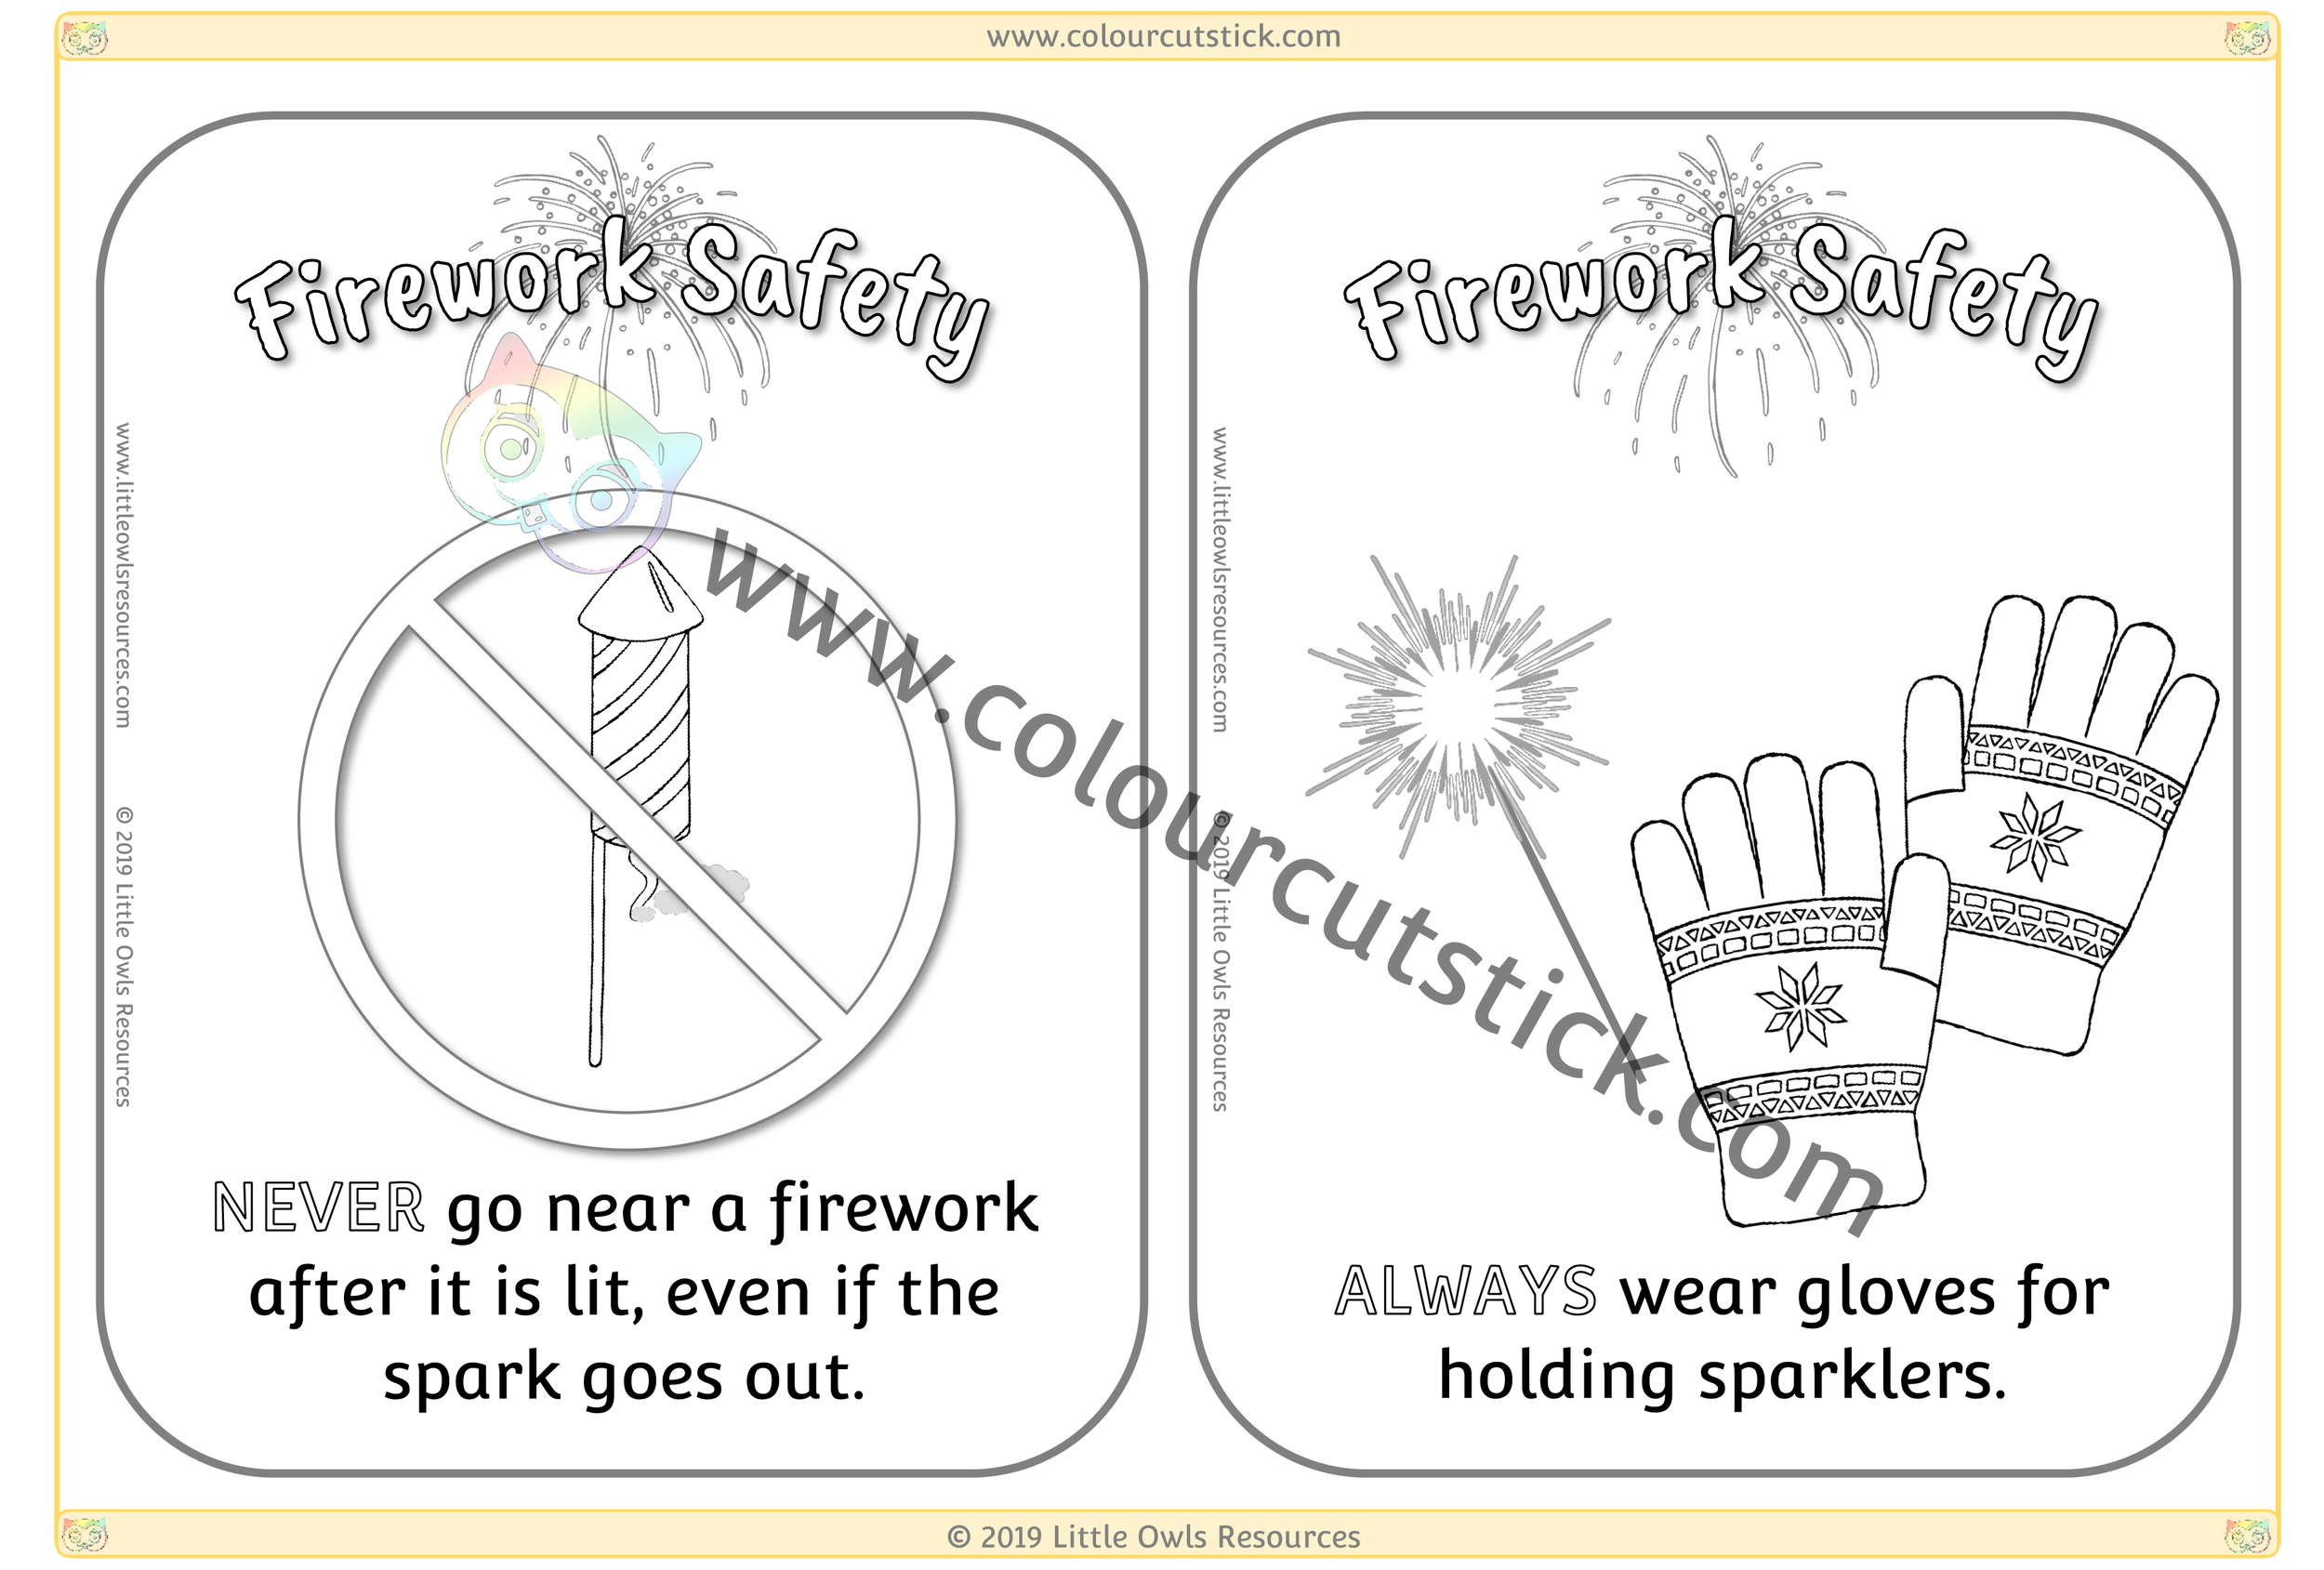 Firework Safety Cards Colouring - 1 -